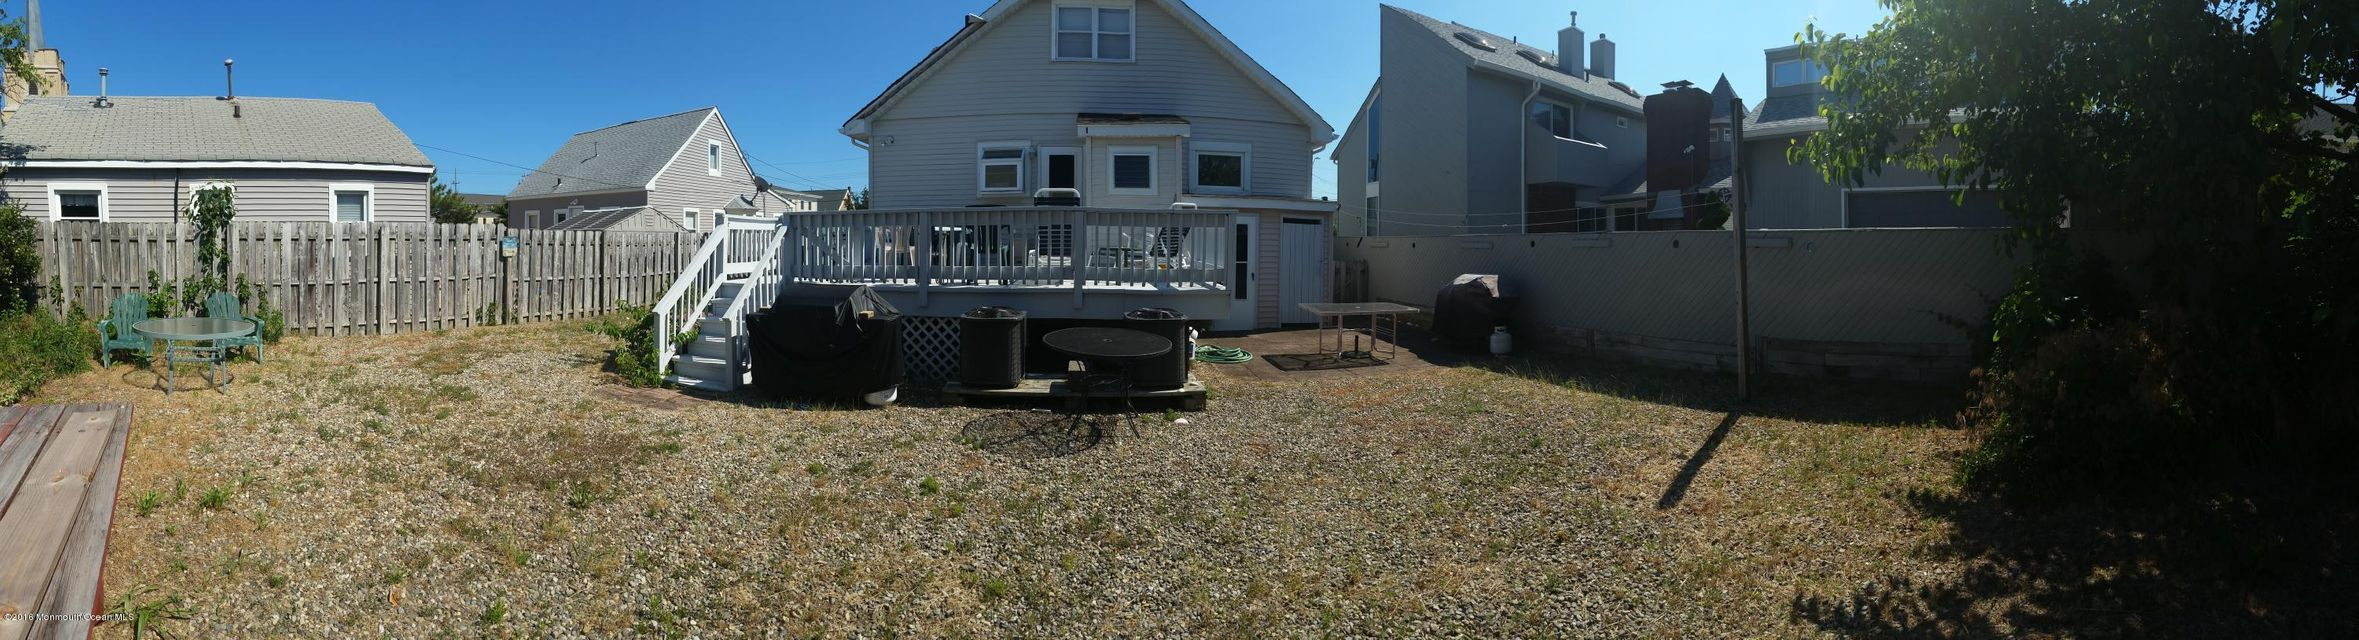 Additional photo for property listing at 105 Philadelphia Avenue  Lavallette, New Jersey 08735 United States